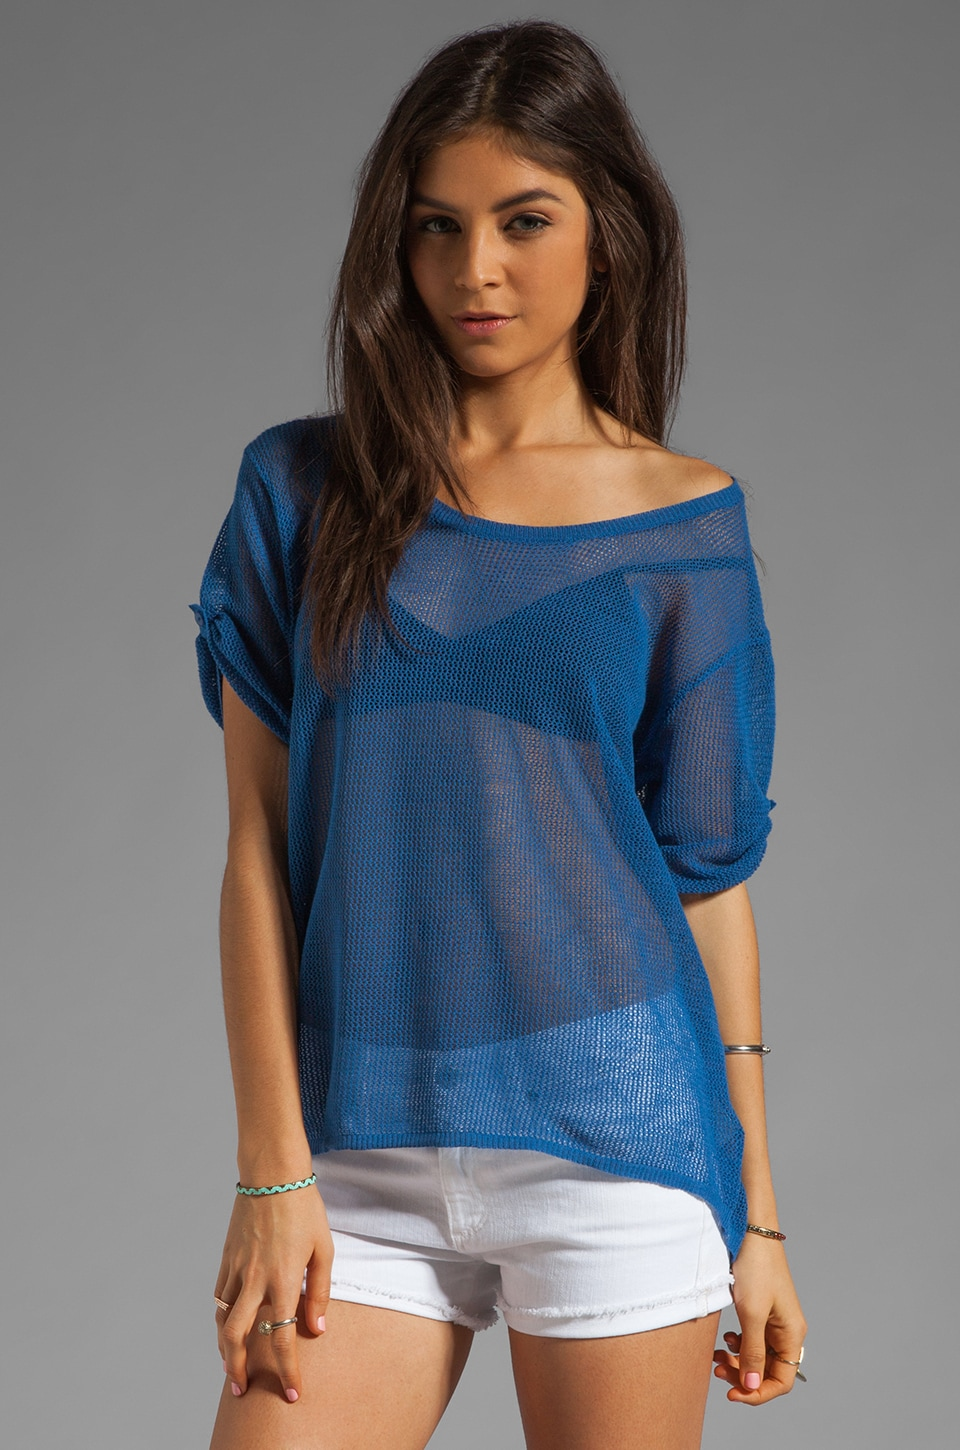 Line The Sea Breeze Top in Clearwater